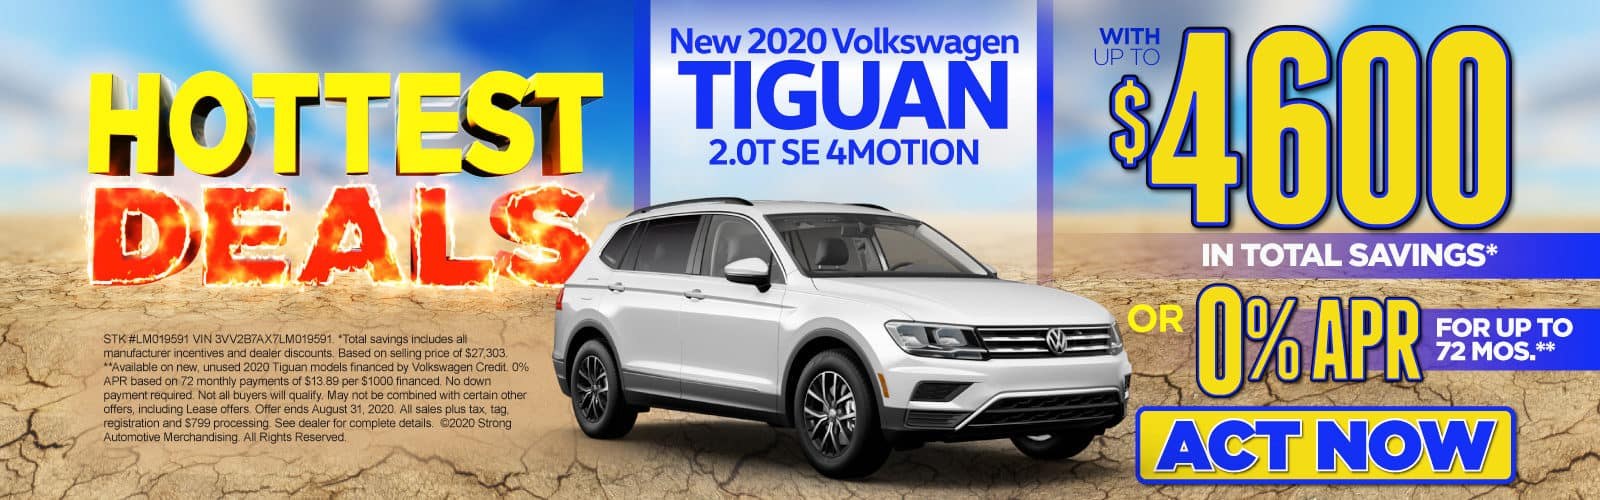 New 2020 VW Tiguan - Up to $4600 in total savings - Act Now